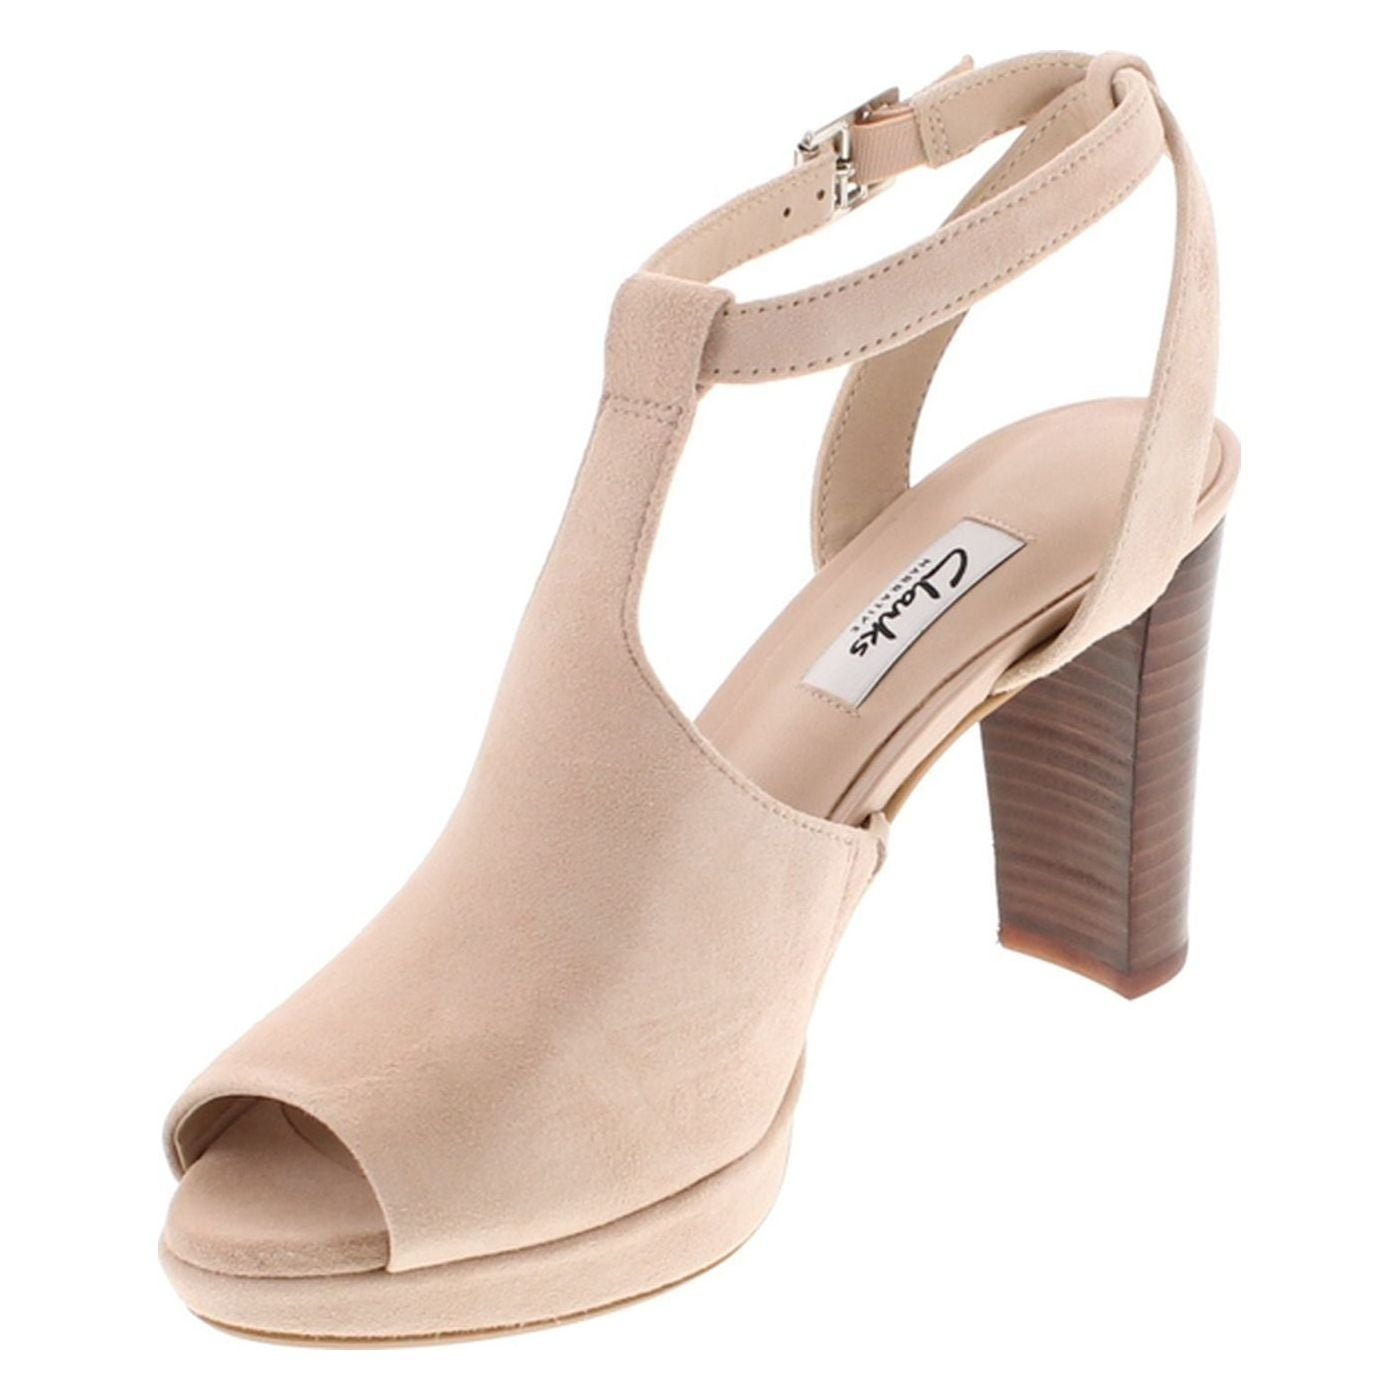 f24b4d60d388 Shop Clarks Women s Kendra Charm Peep Toe Ankle Strap Sandal - Free  Shipping Today - Overstock - 20672625